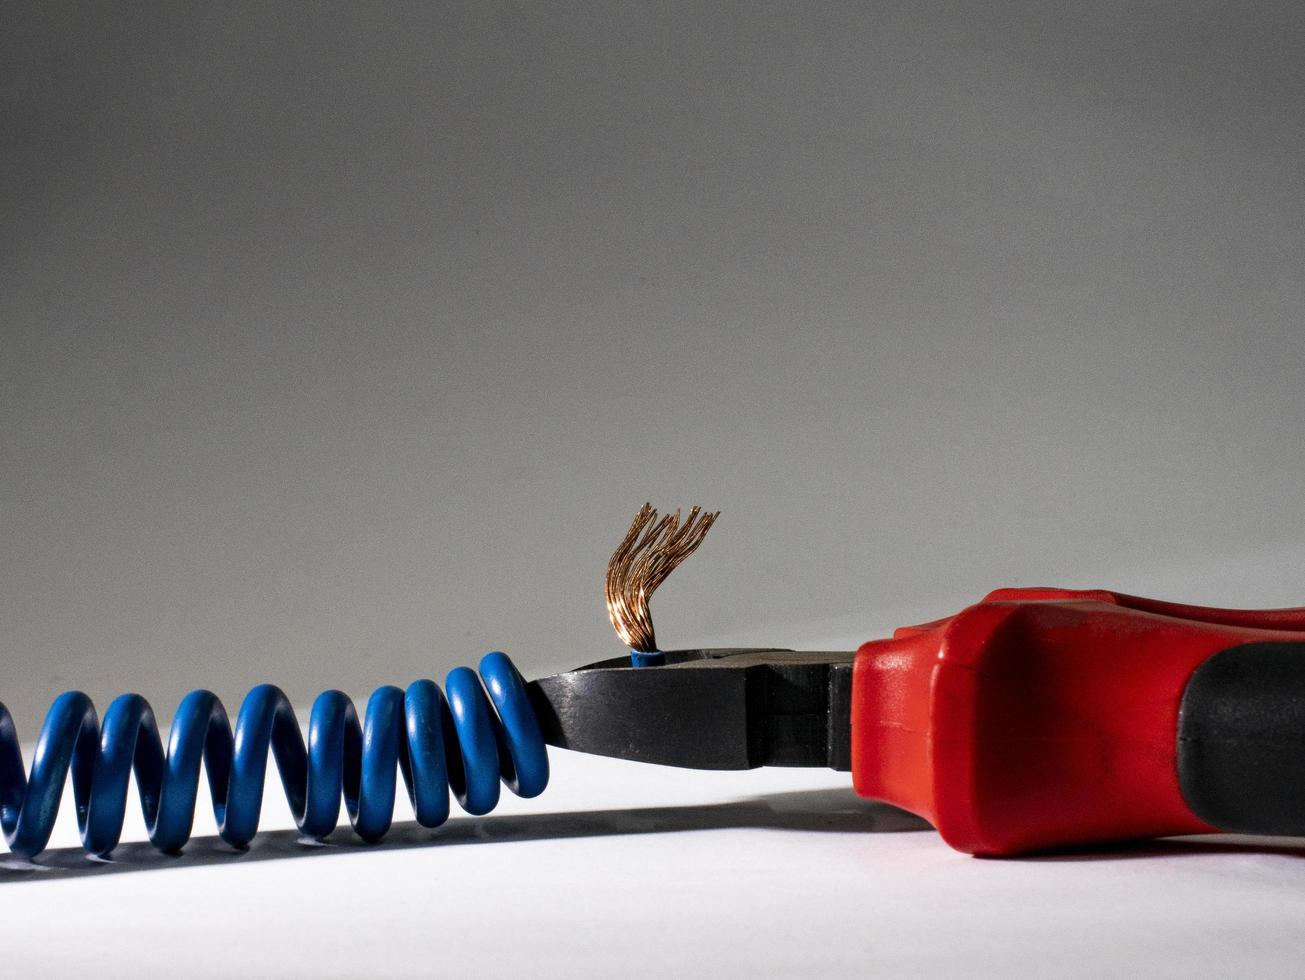 red pliers and blue twisted wire on white background photo